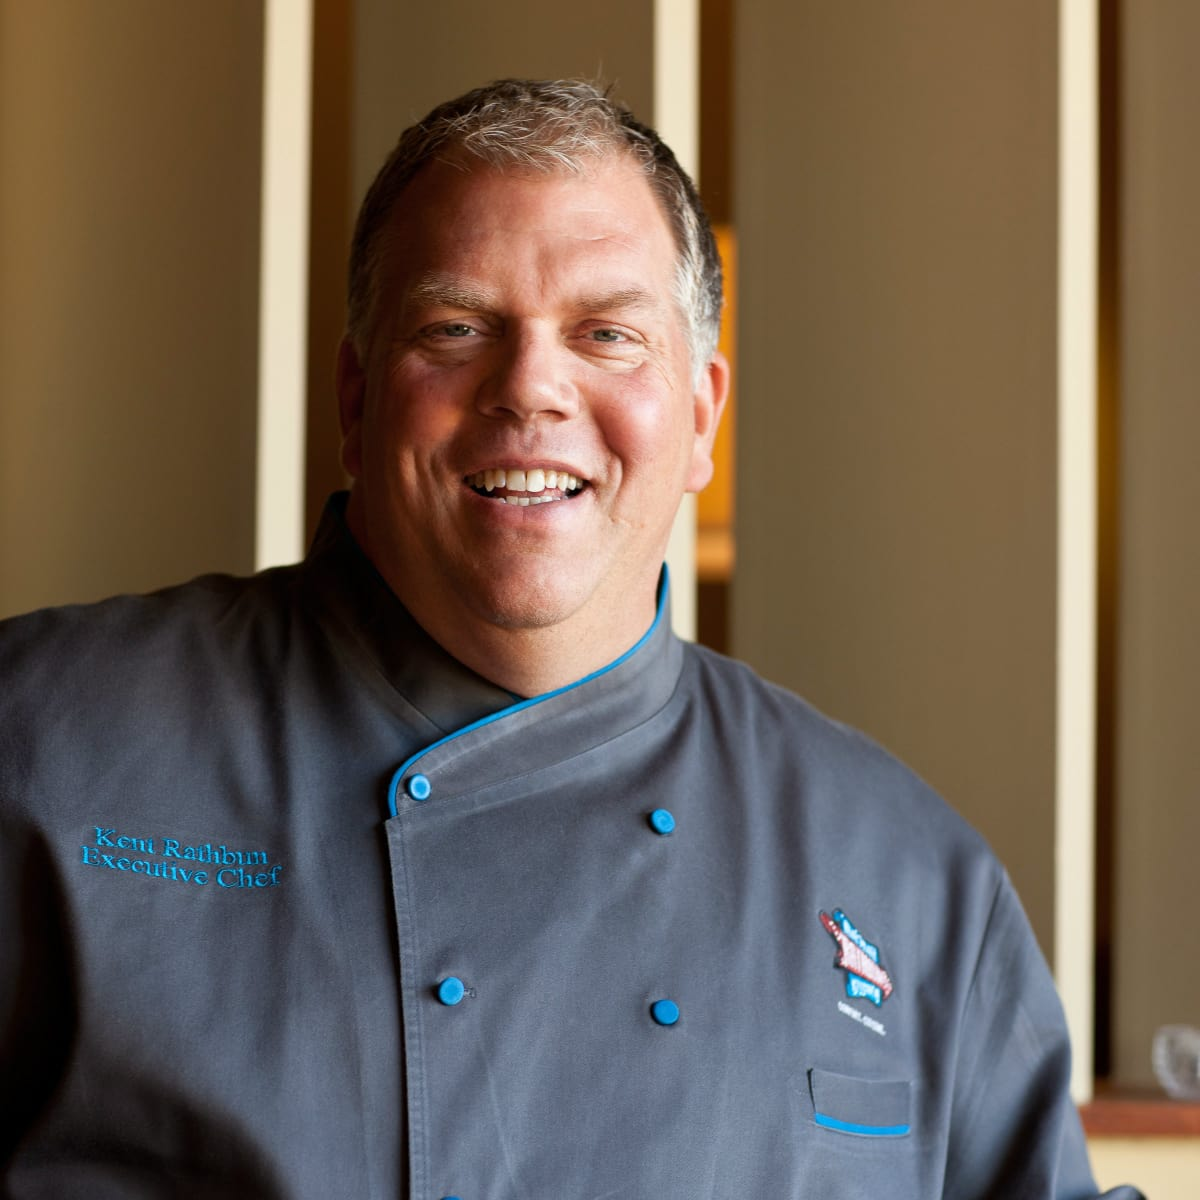 Dallas chef Kent Rathbun of Abacus